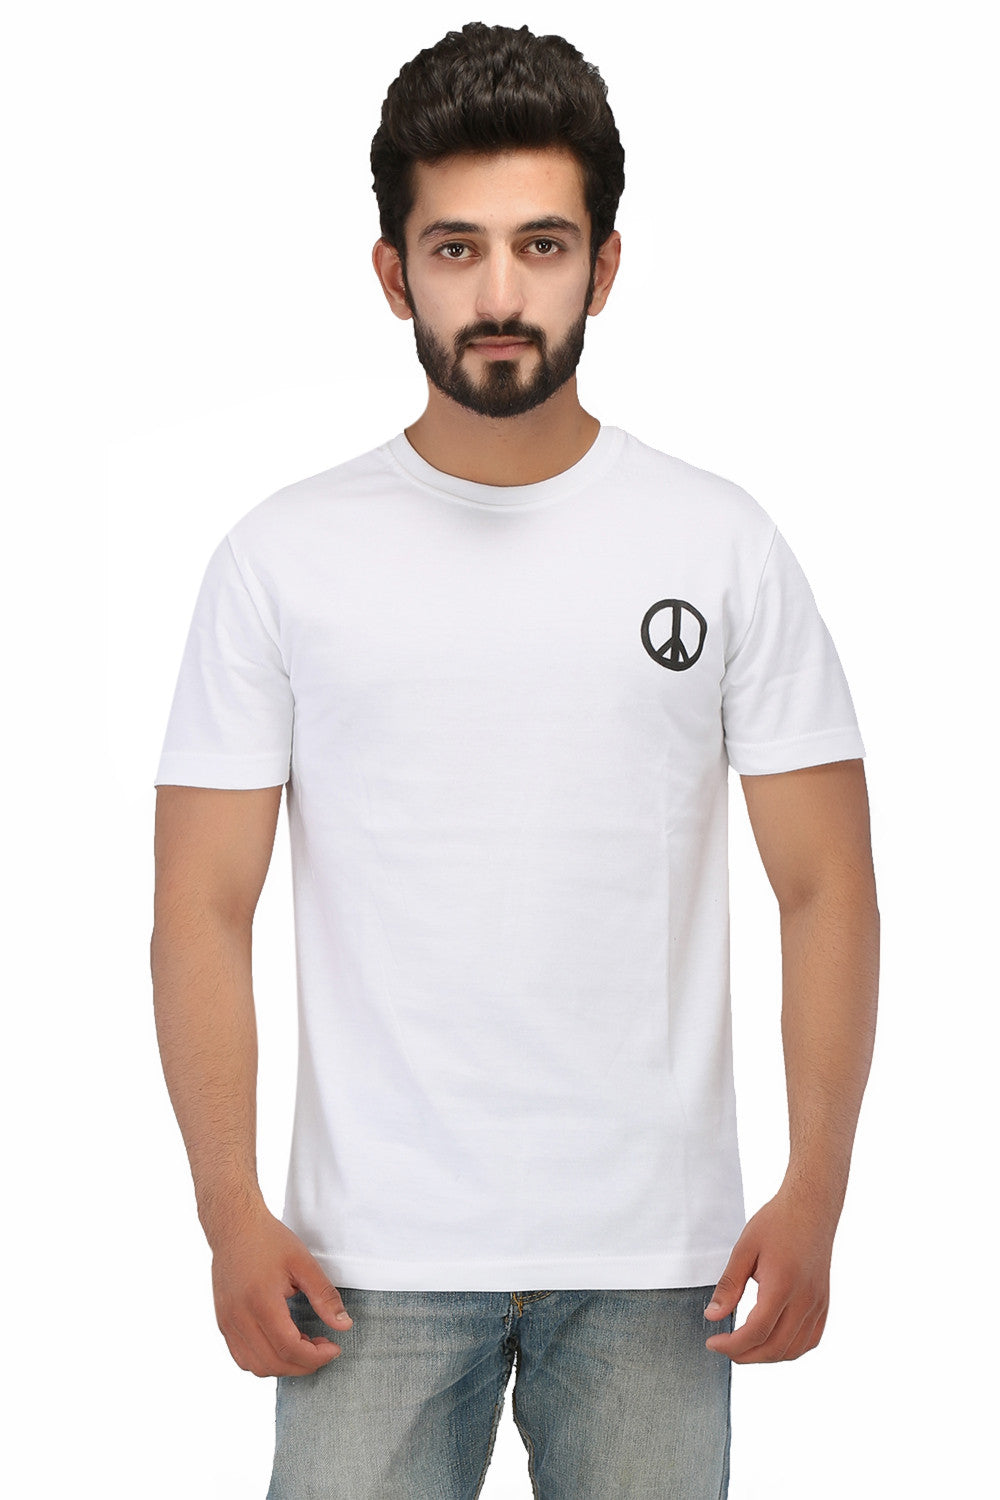 Hand-painted Peace White T-shirt - Rang Rage  - 1